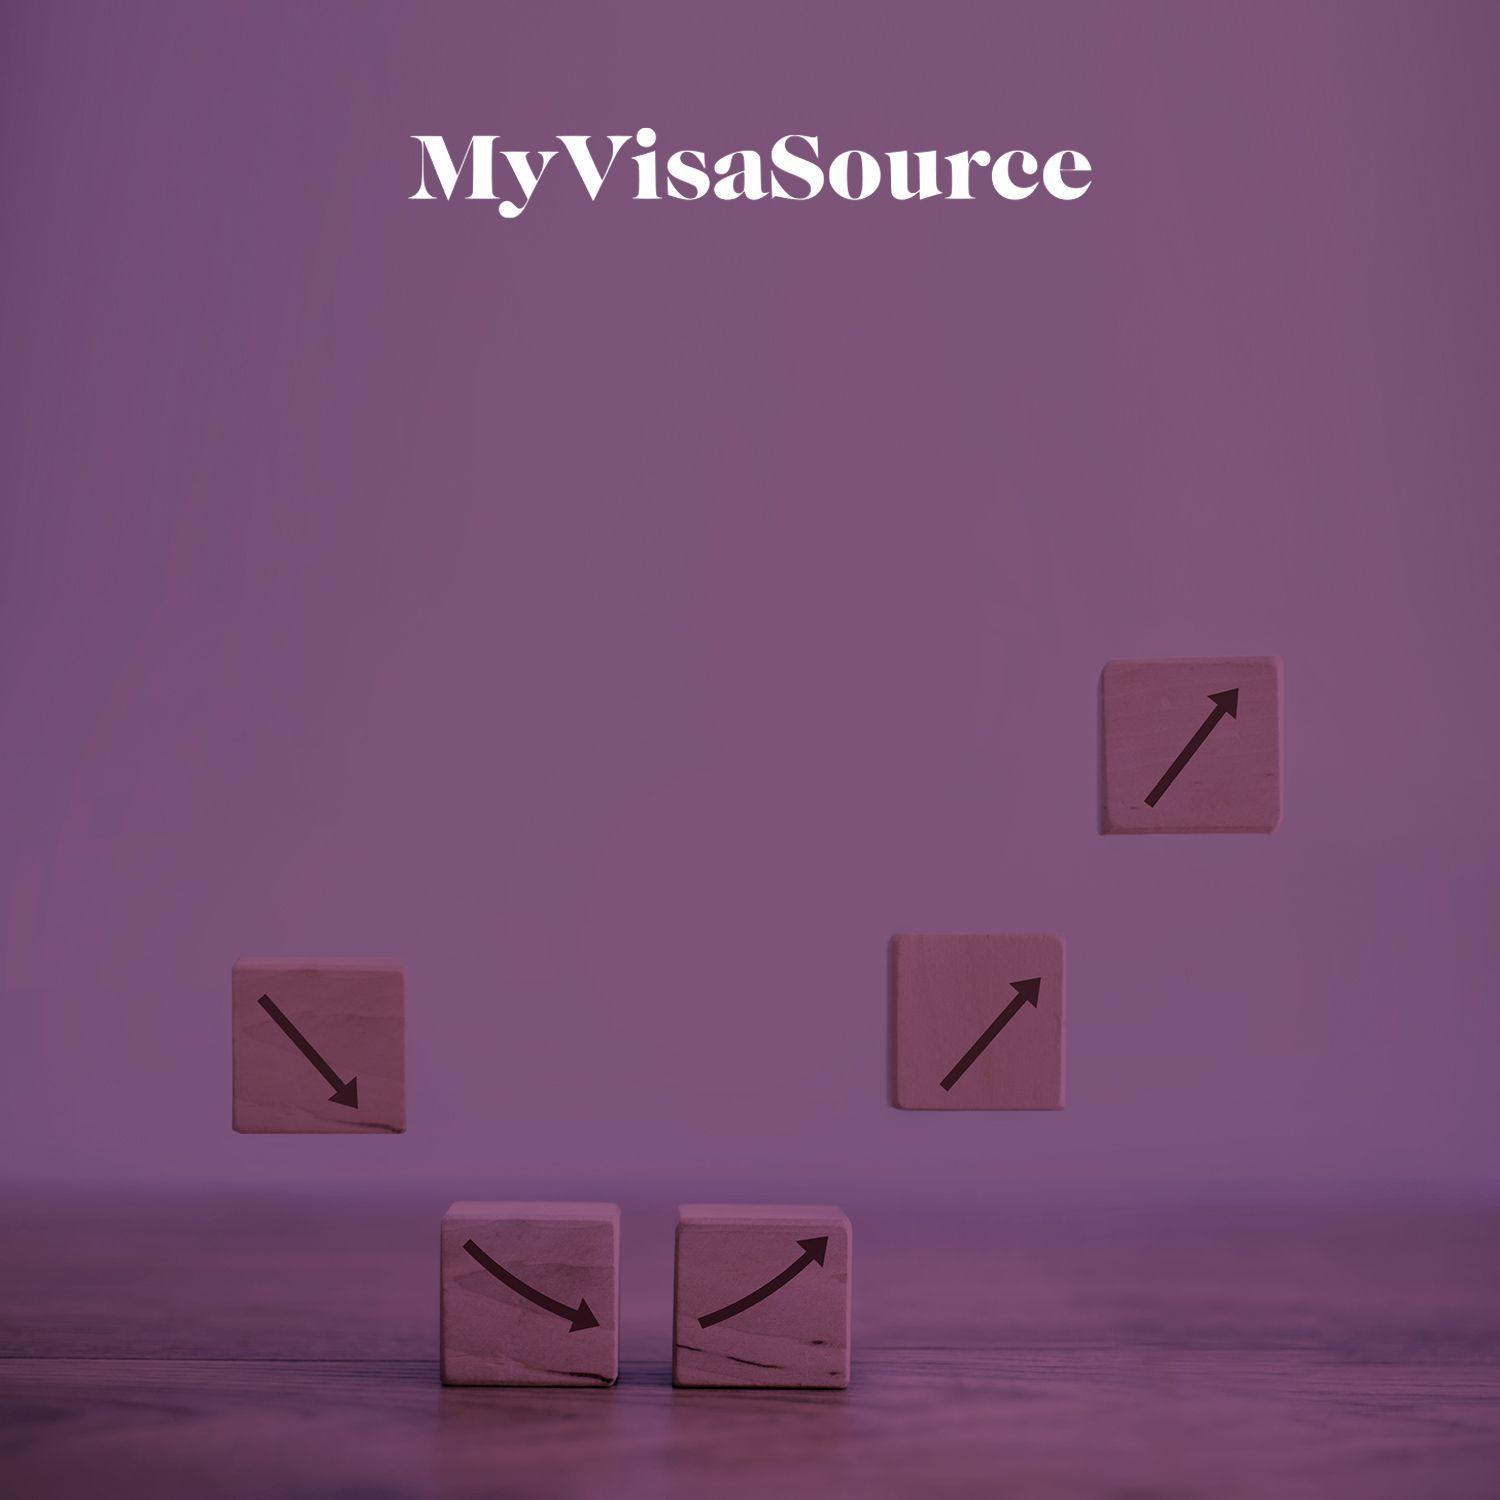 wooden blocks with arrows going down then back up my visa source